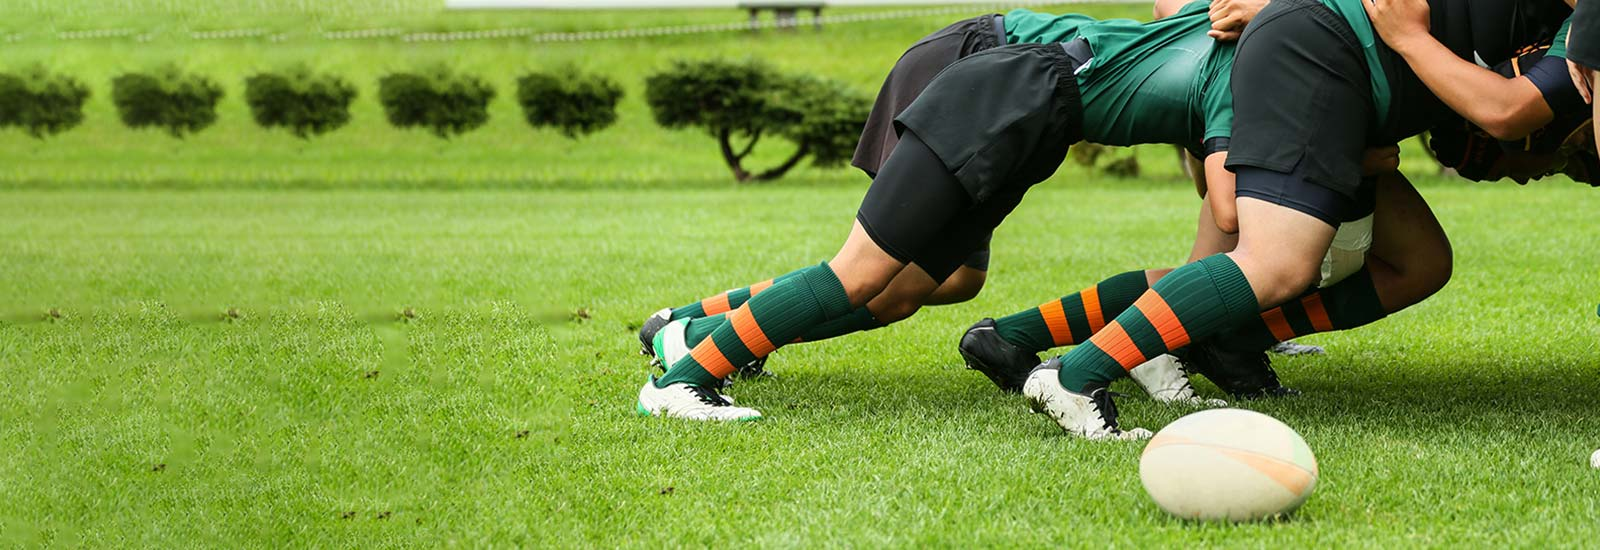 Sports_Landing_page_Rugby_Tile